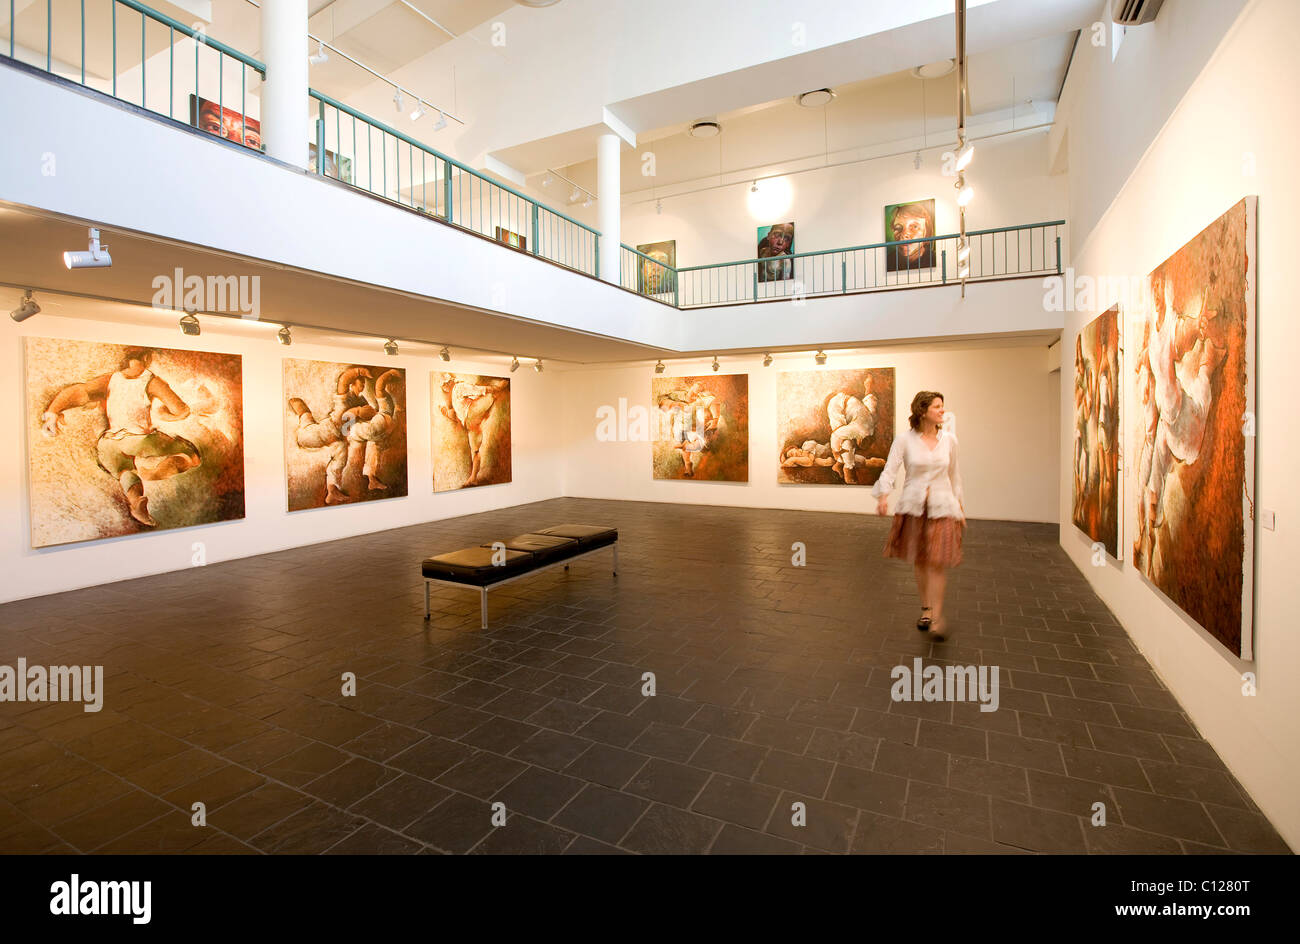 Art Gallery, 'AVA', Association for Visual Arts, art, exhibition, Cape Town, South Africa, Africa - Stock Image